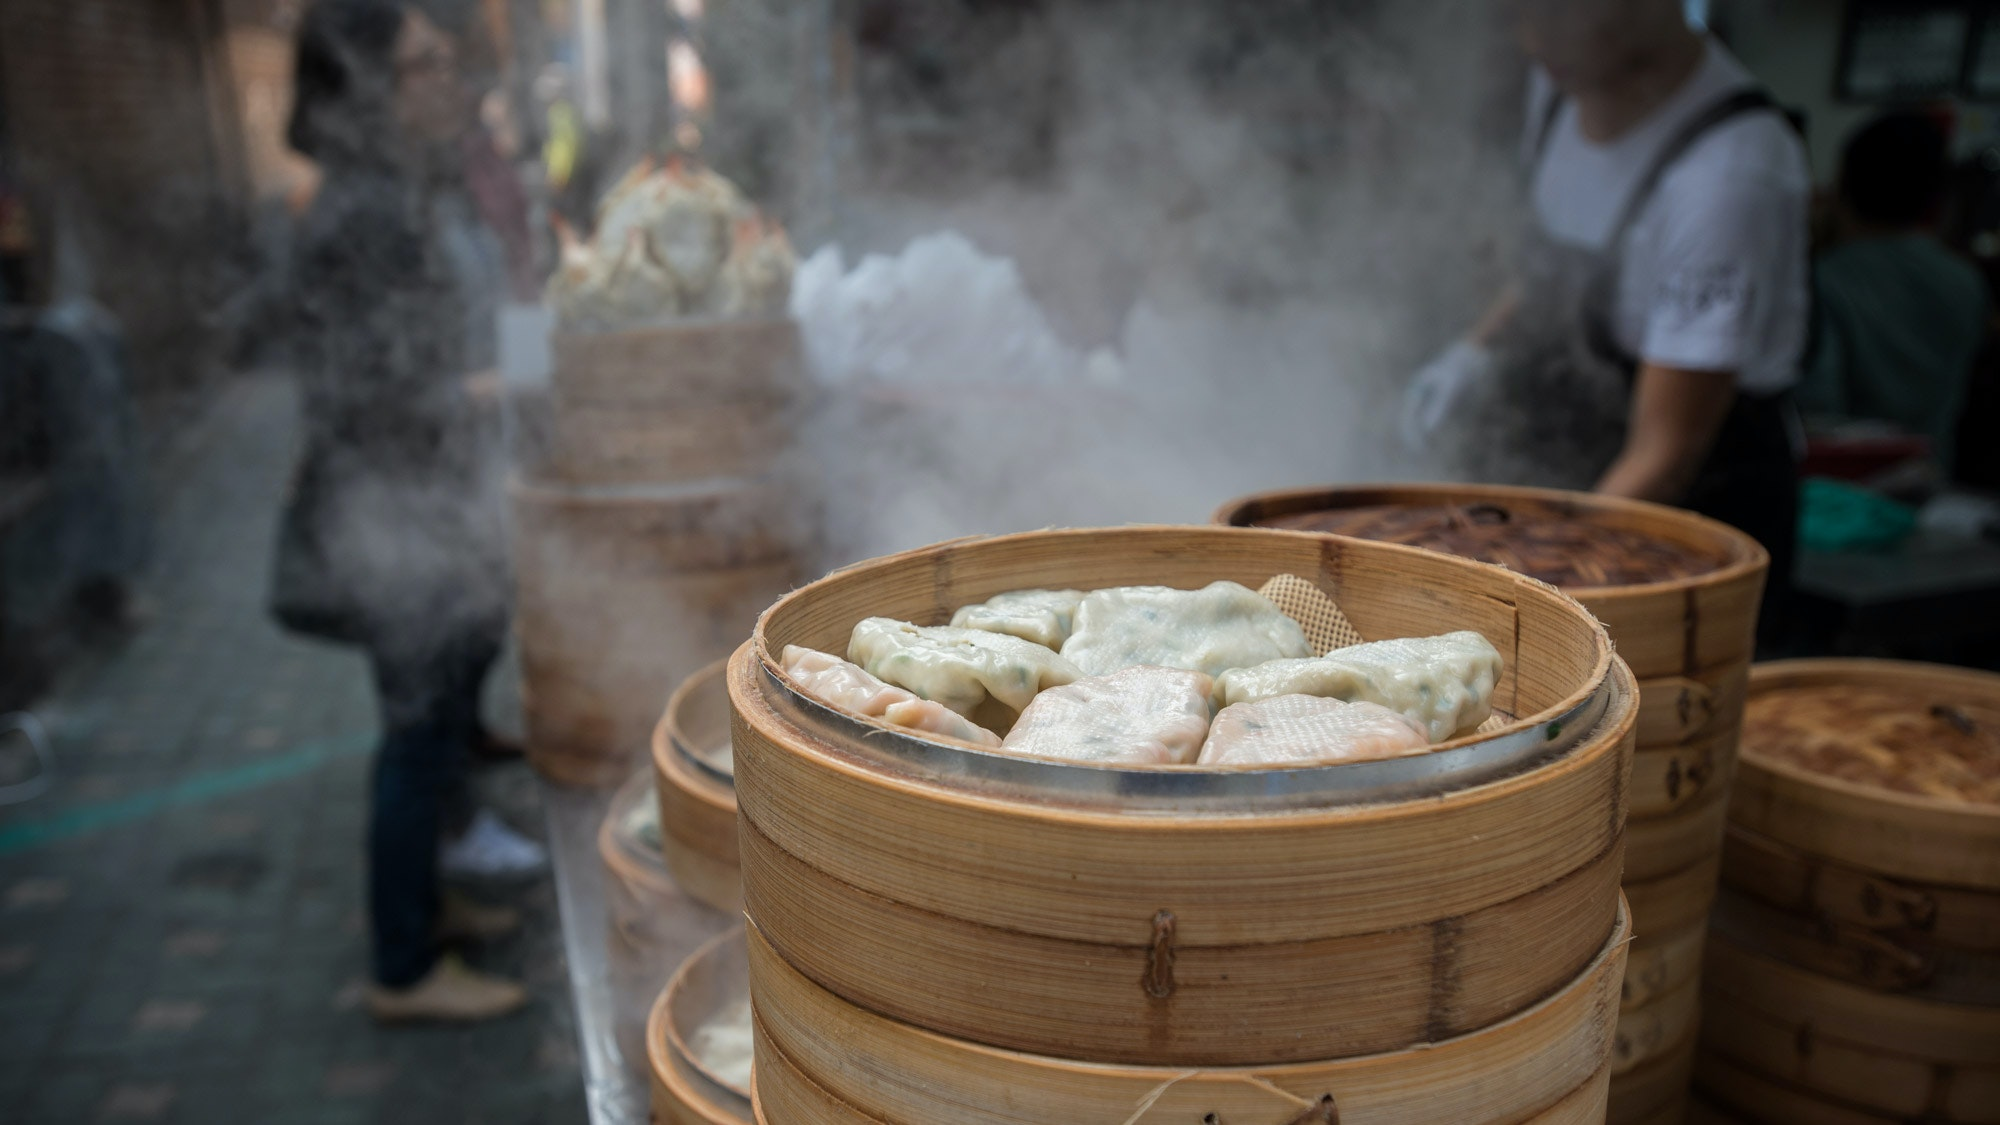 What's more comforting than street dumplings?